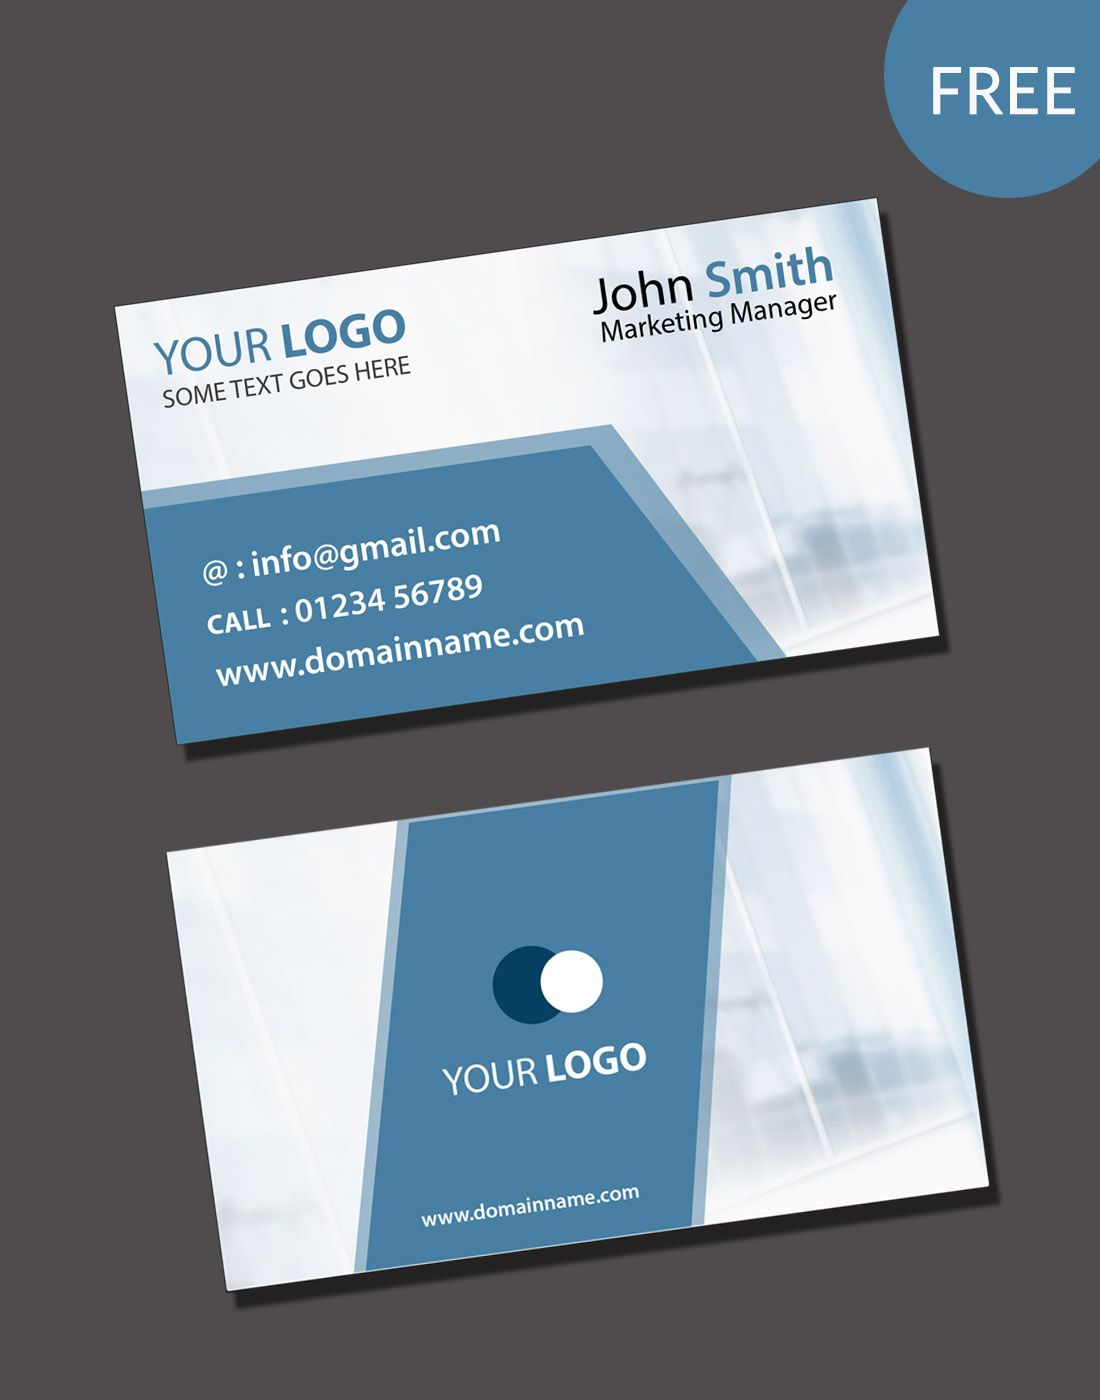 020 Free Blank Business Card Templates